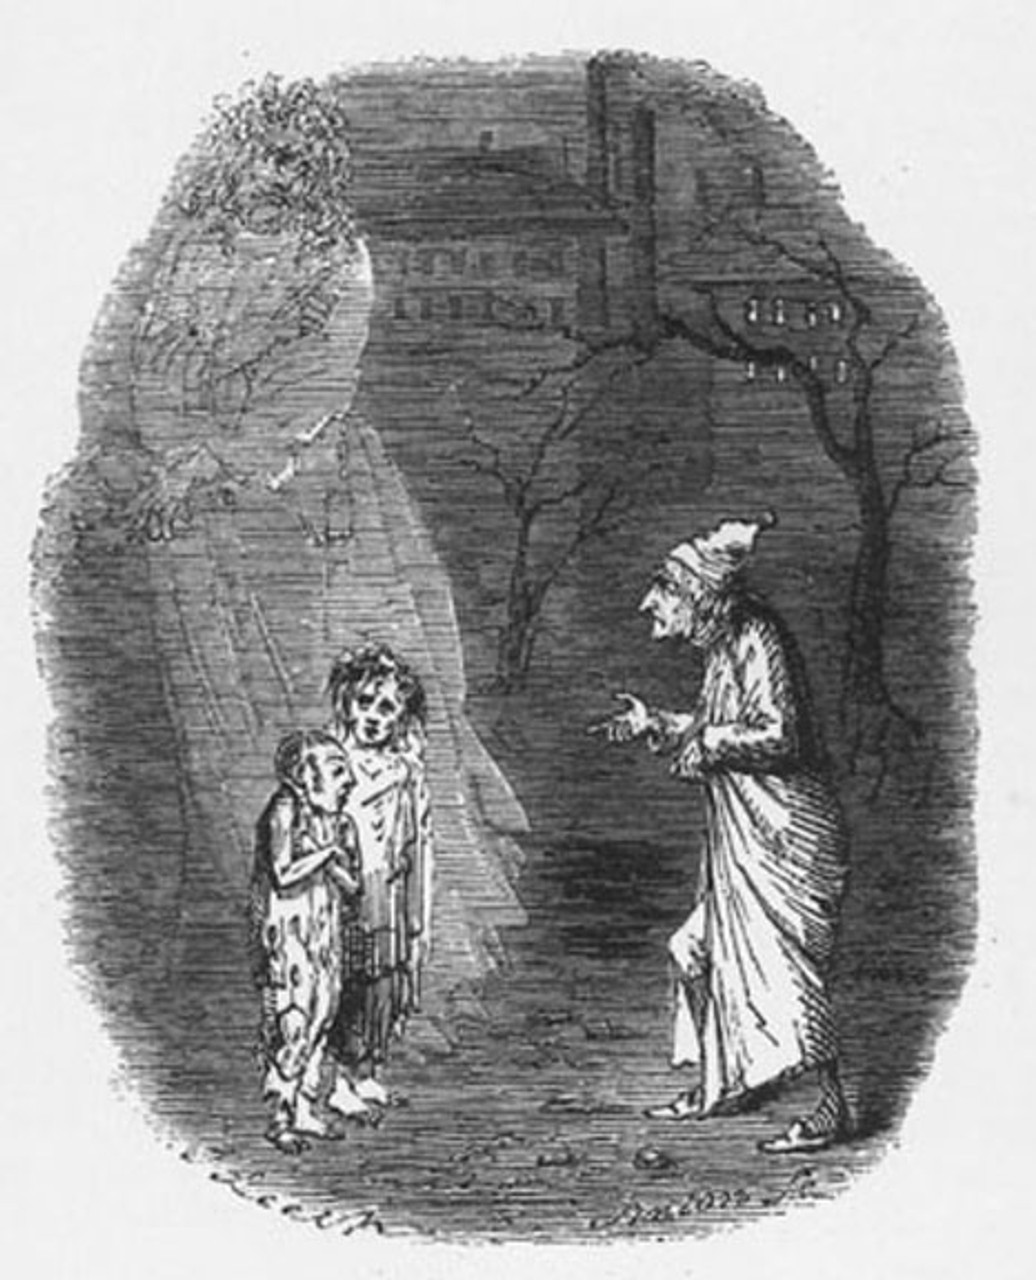 Scrooge and the children, original illustration from A Christmas Carol by Charles Dickens